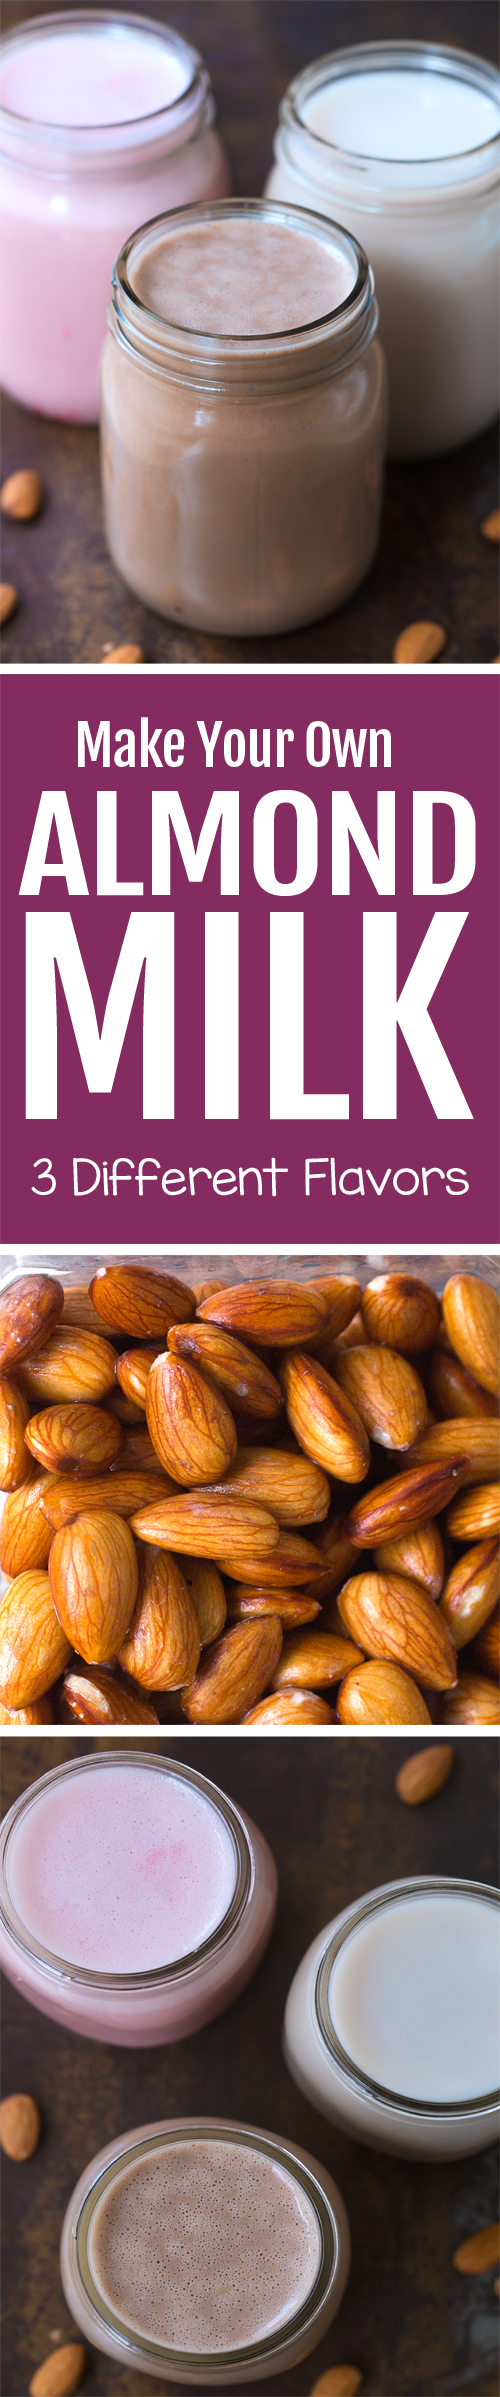 It really can't. Nut and seed milks don't separate and curdle the way animal milks do and commercial almond milk contains very little actual almond. You can make vegan cheese-like spreads using the nut or seed pulp left over from making homemade almond milk.